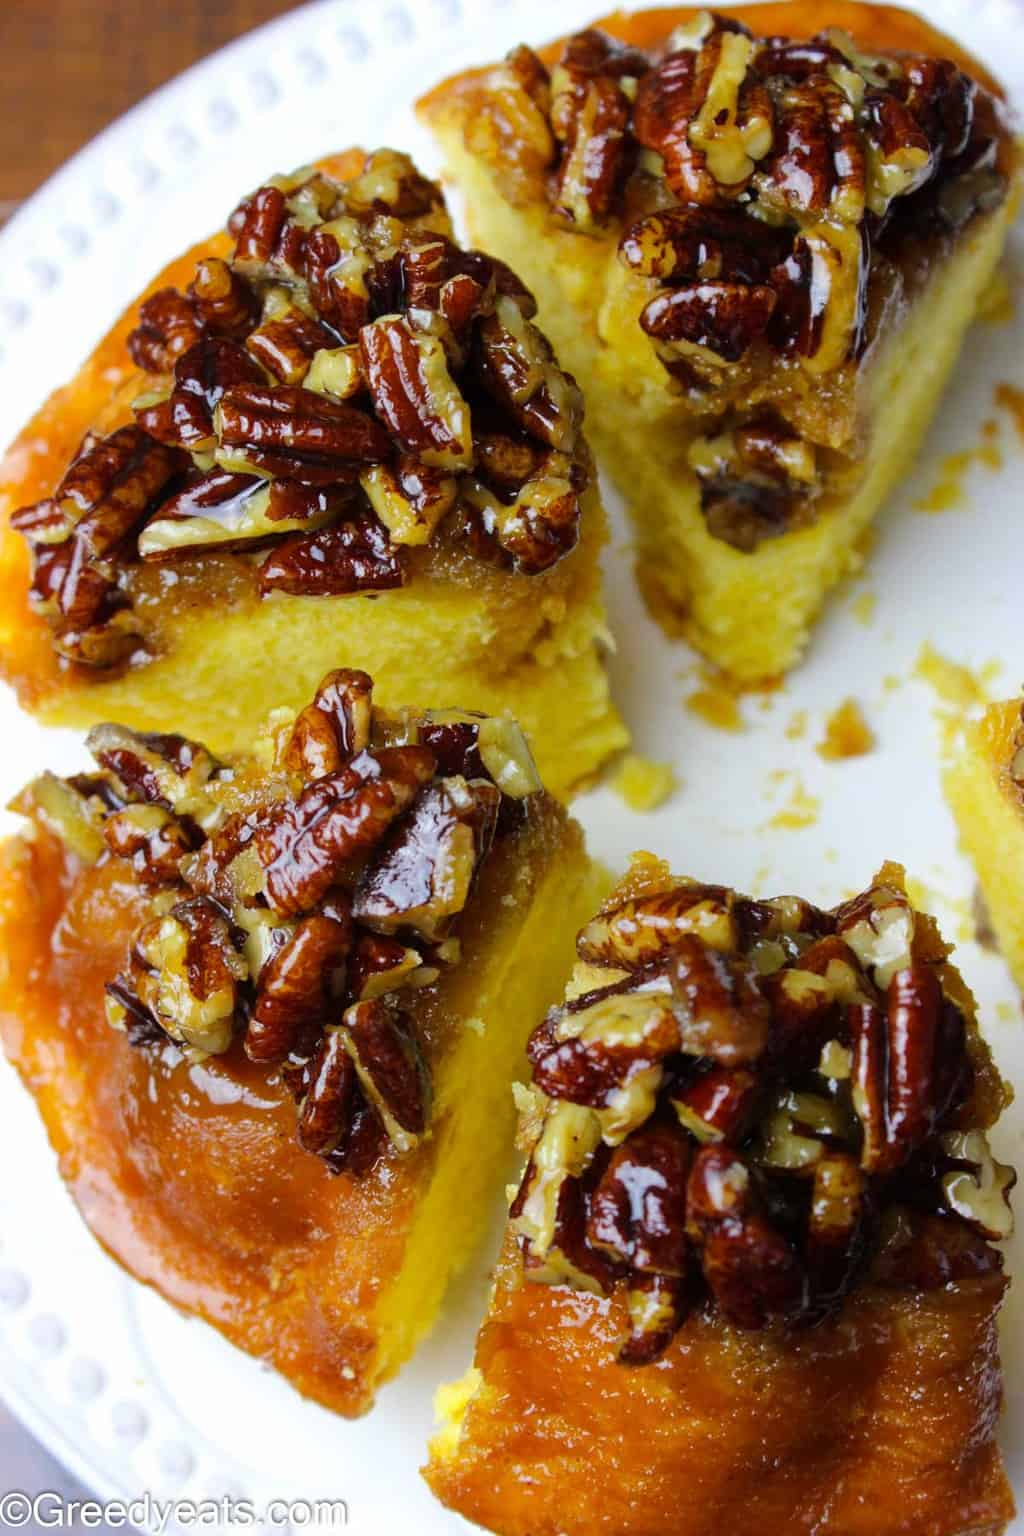 If you like butter pound cake and pecan pie this Pecan Pie Bundt Cake will be an instant favorite!